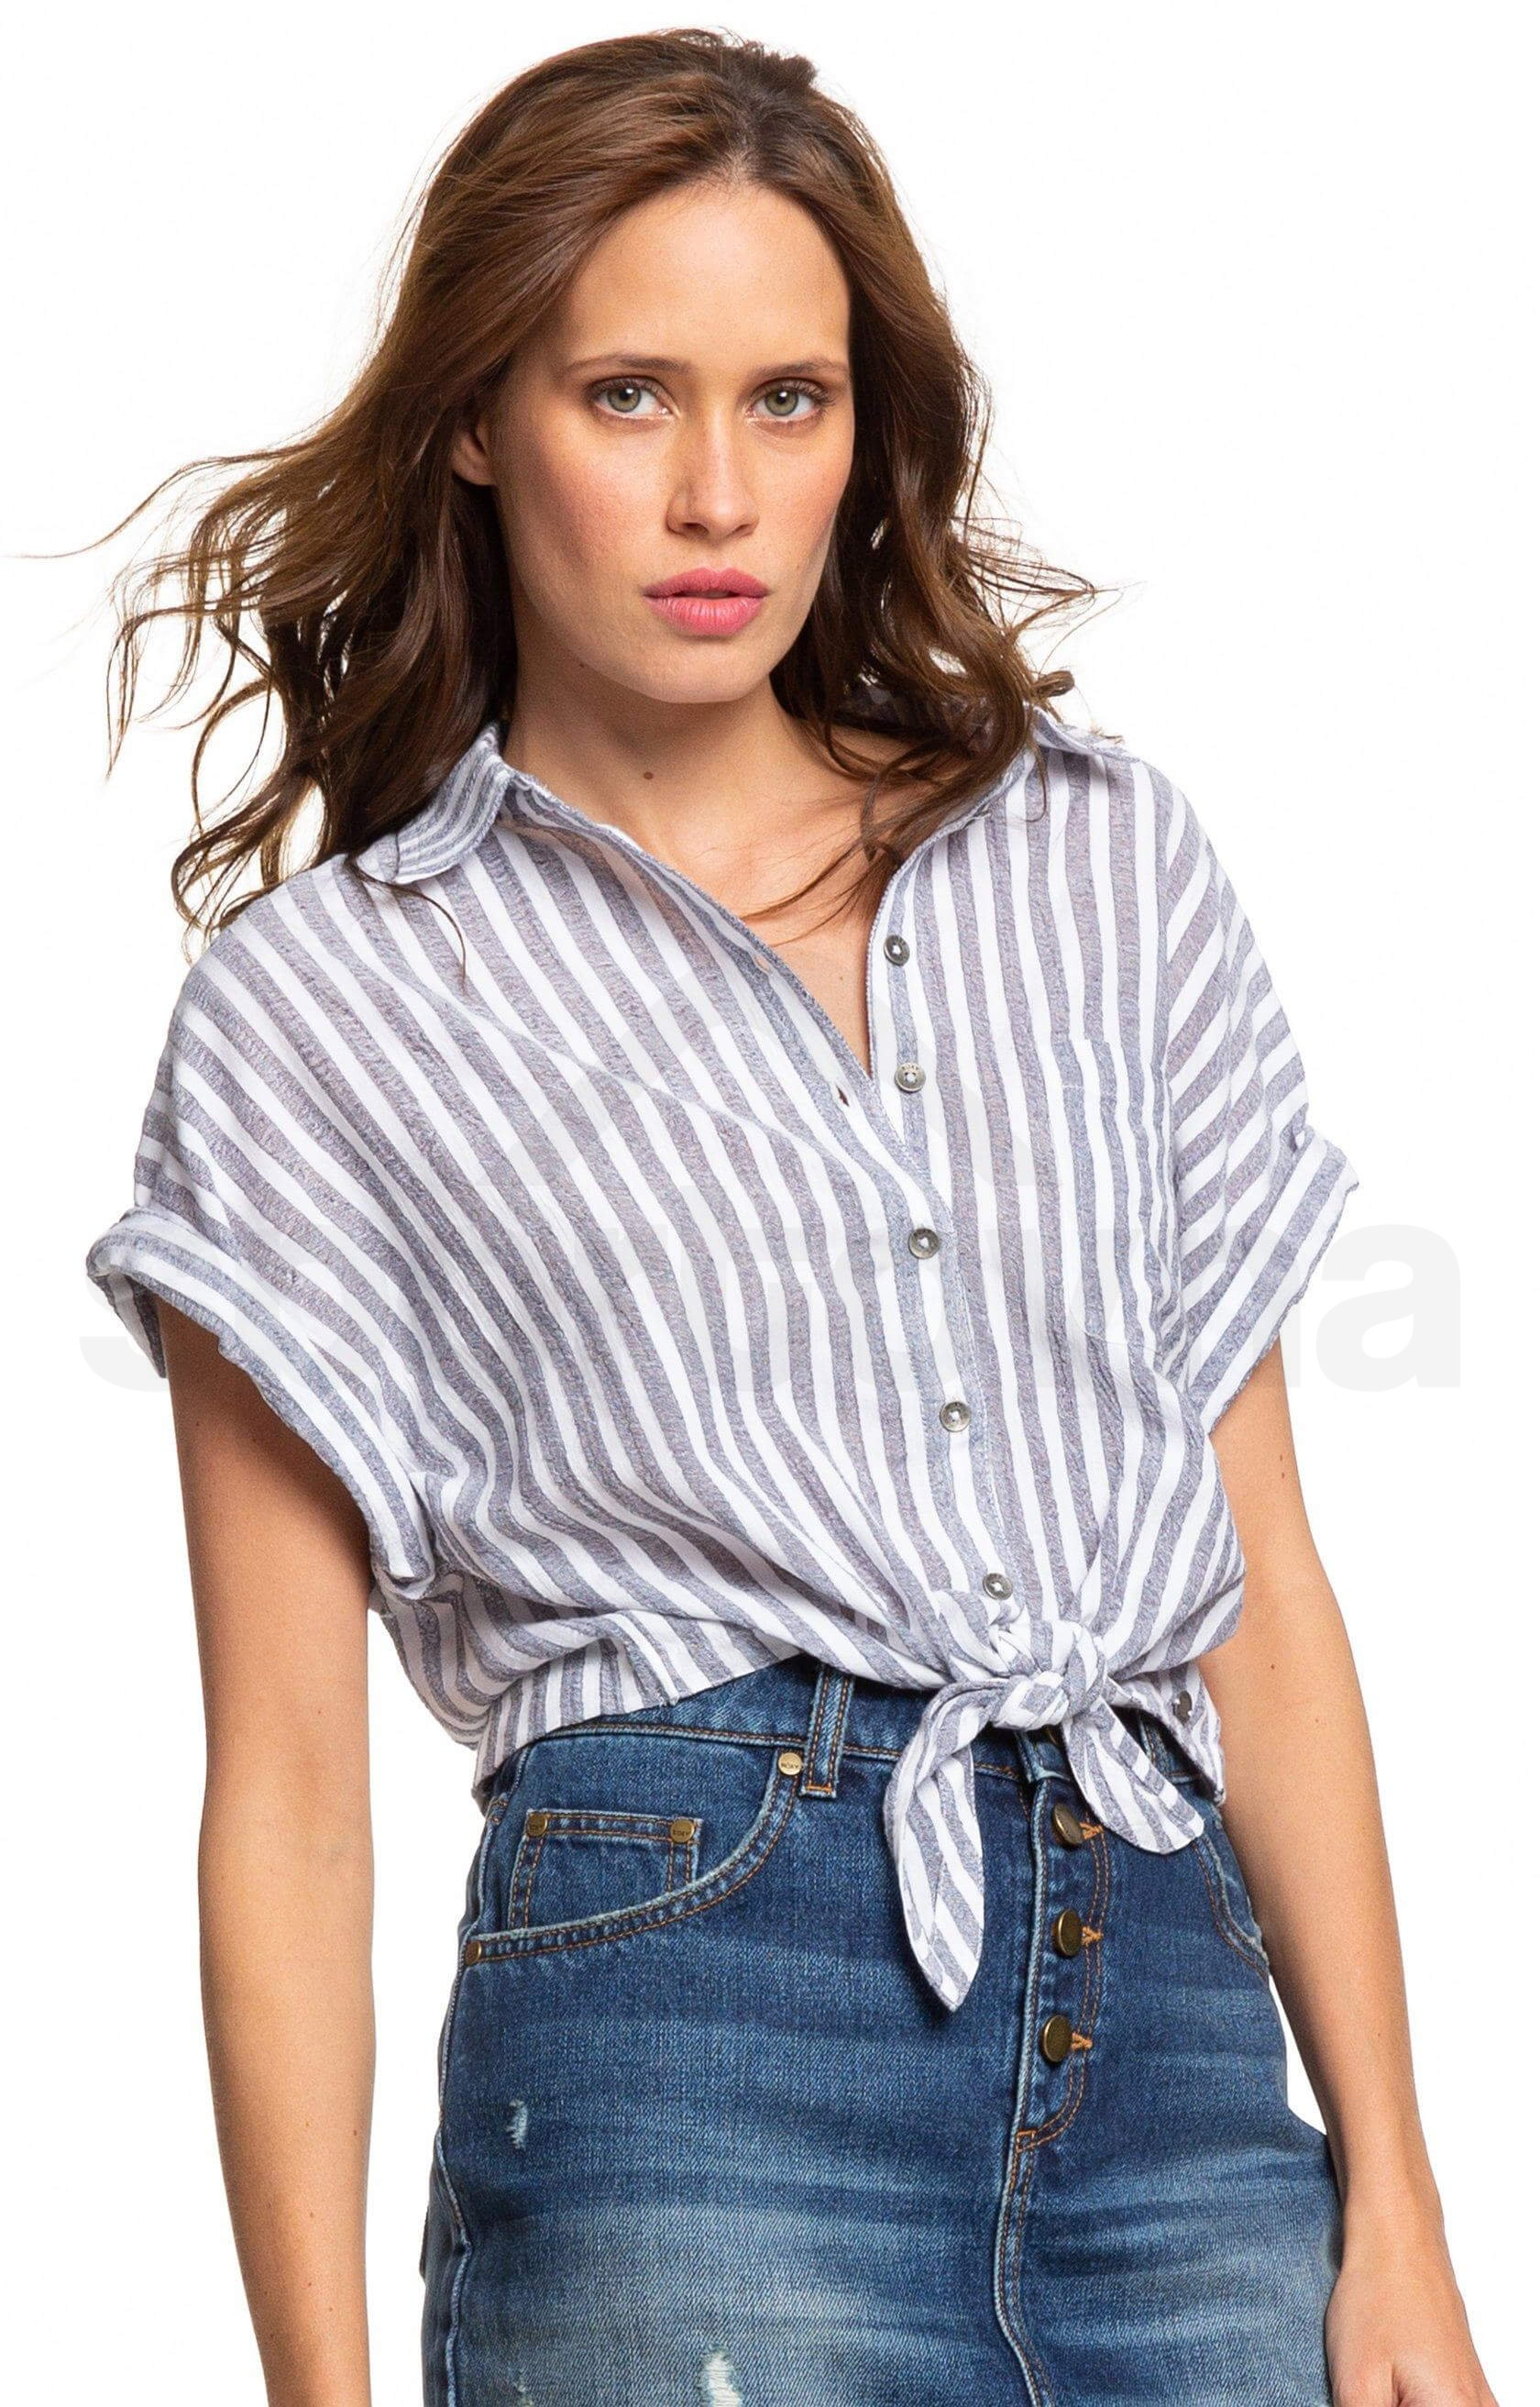 damska-kosile-full-time-dream-mood-indigo-lagos-stripes-erjwt03385-xwbw_1463408320200104175145